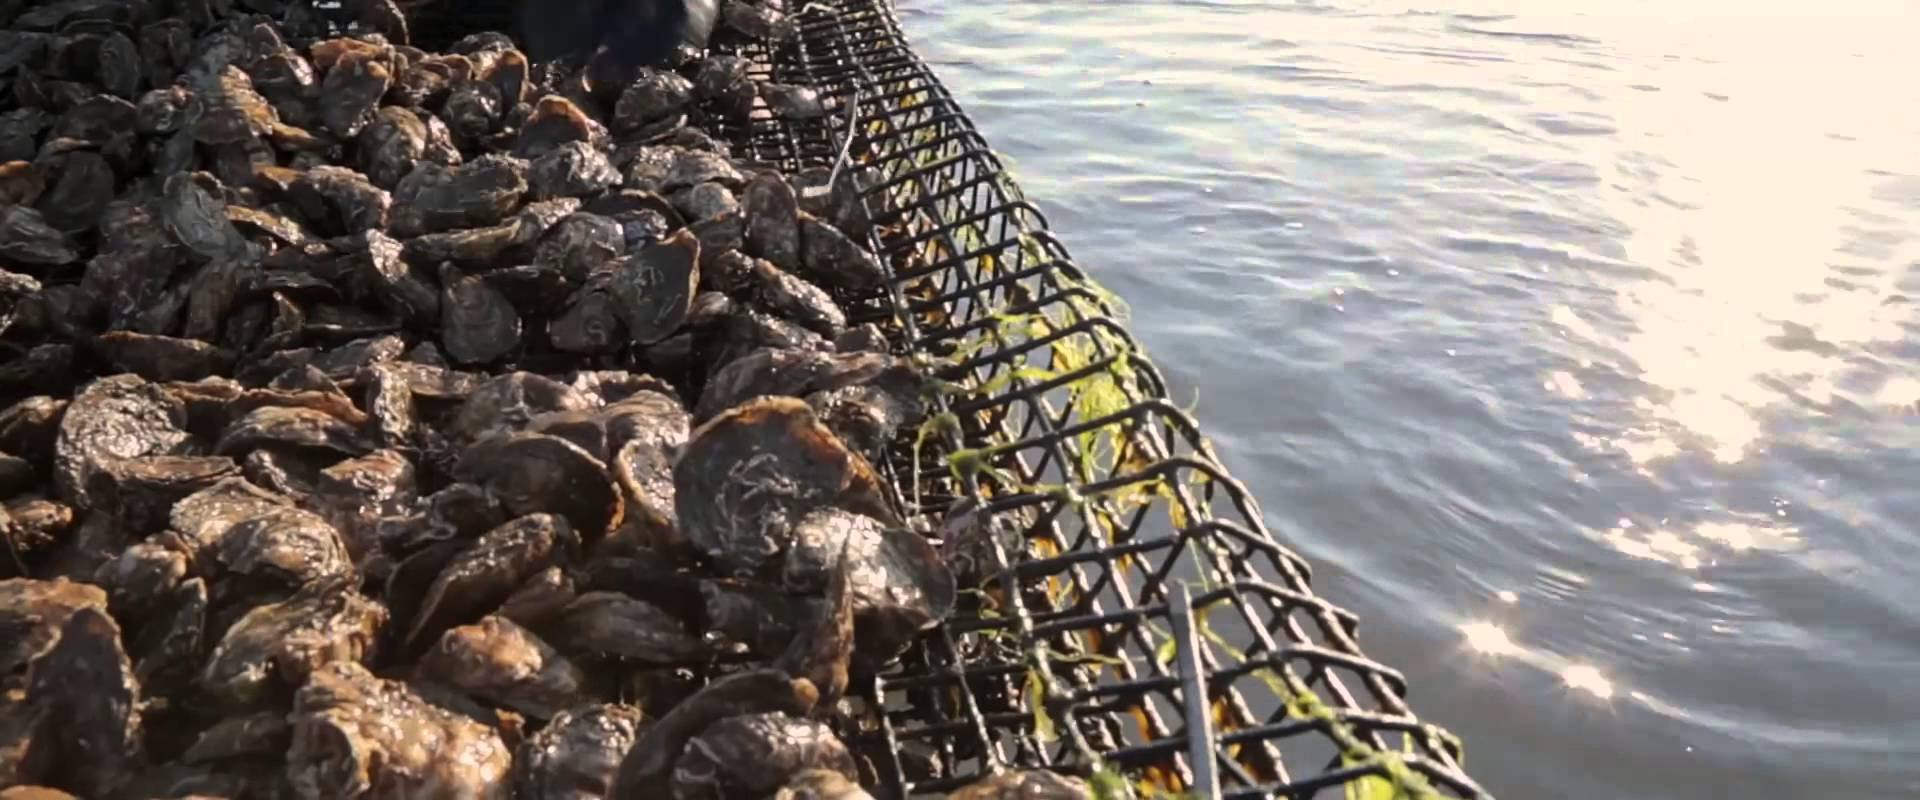 Chincoteague Shellfish Farms A Partnership For Sustainable Seafood Part 1